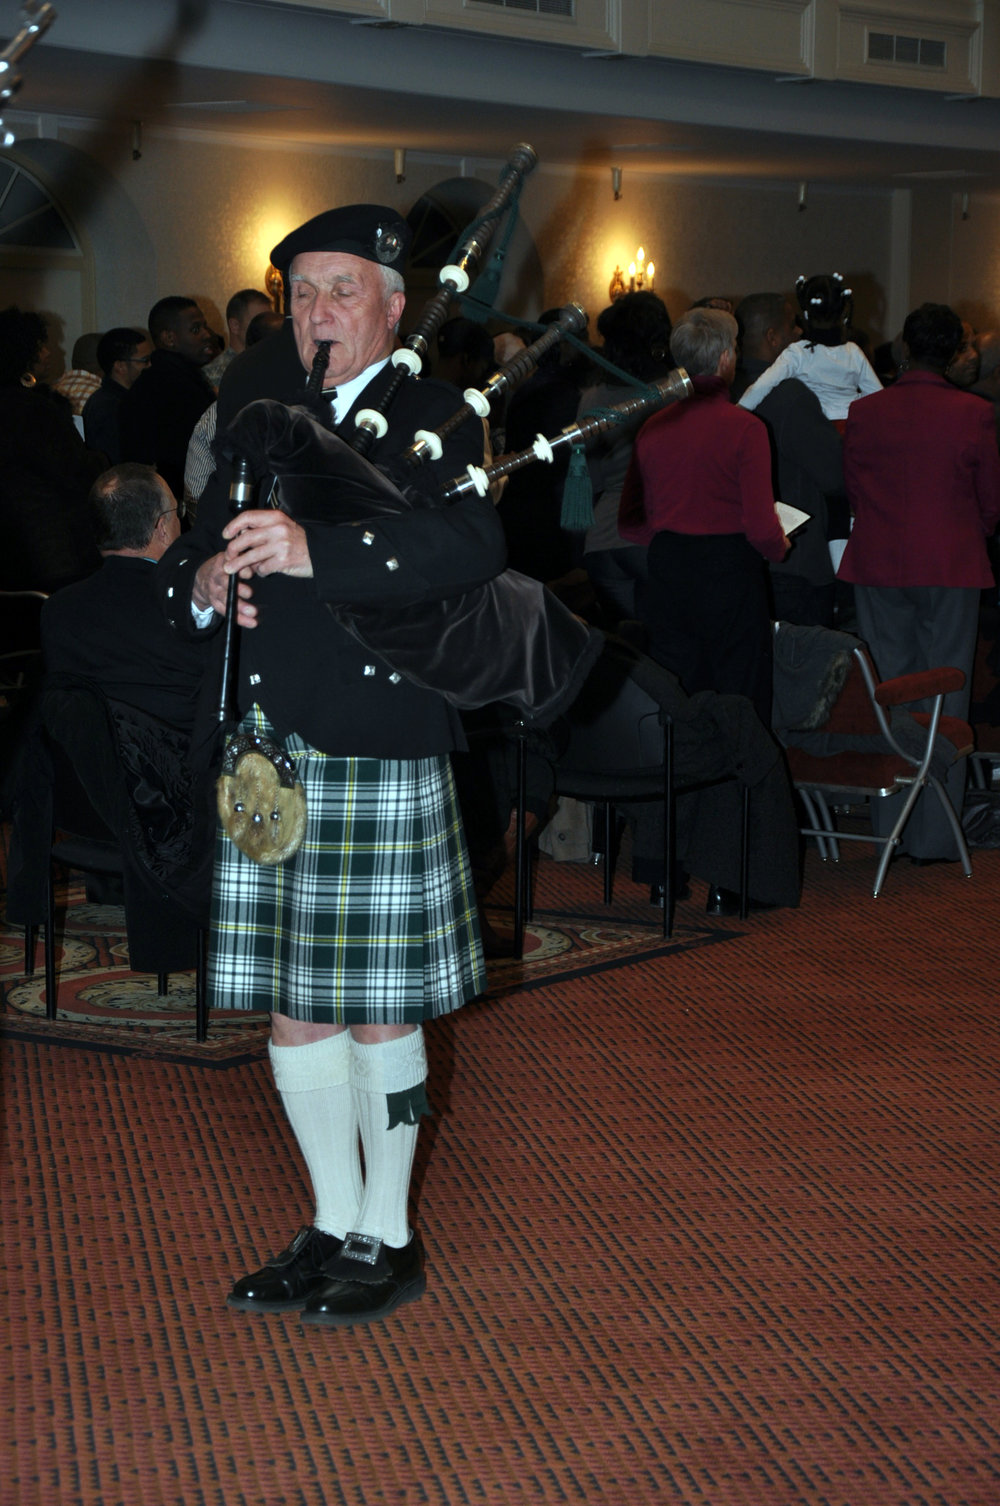 Bagpipes at event